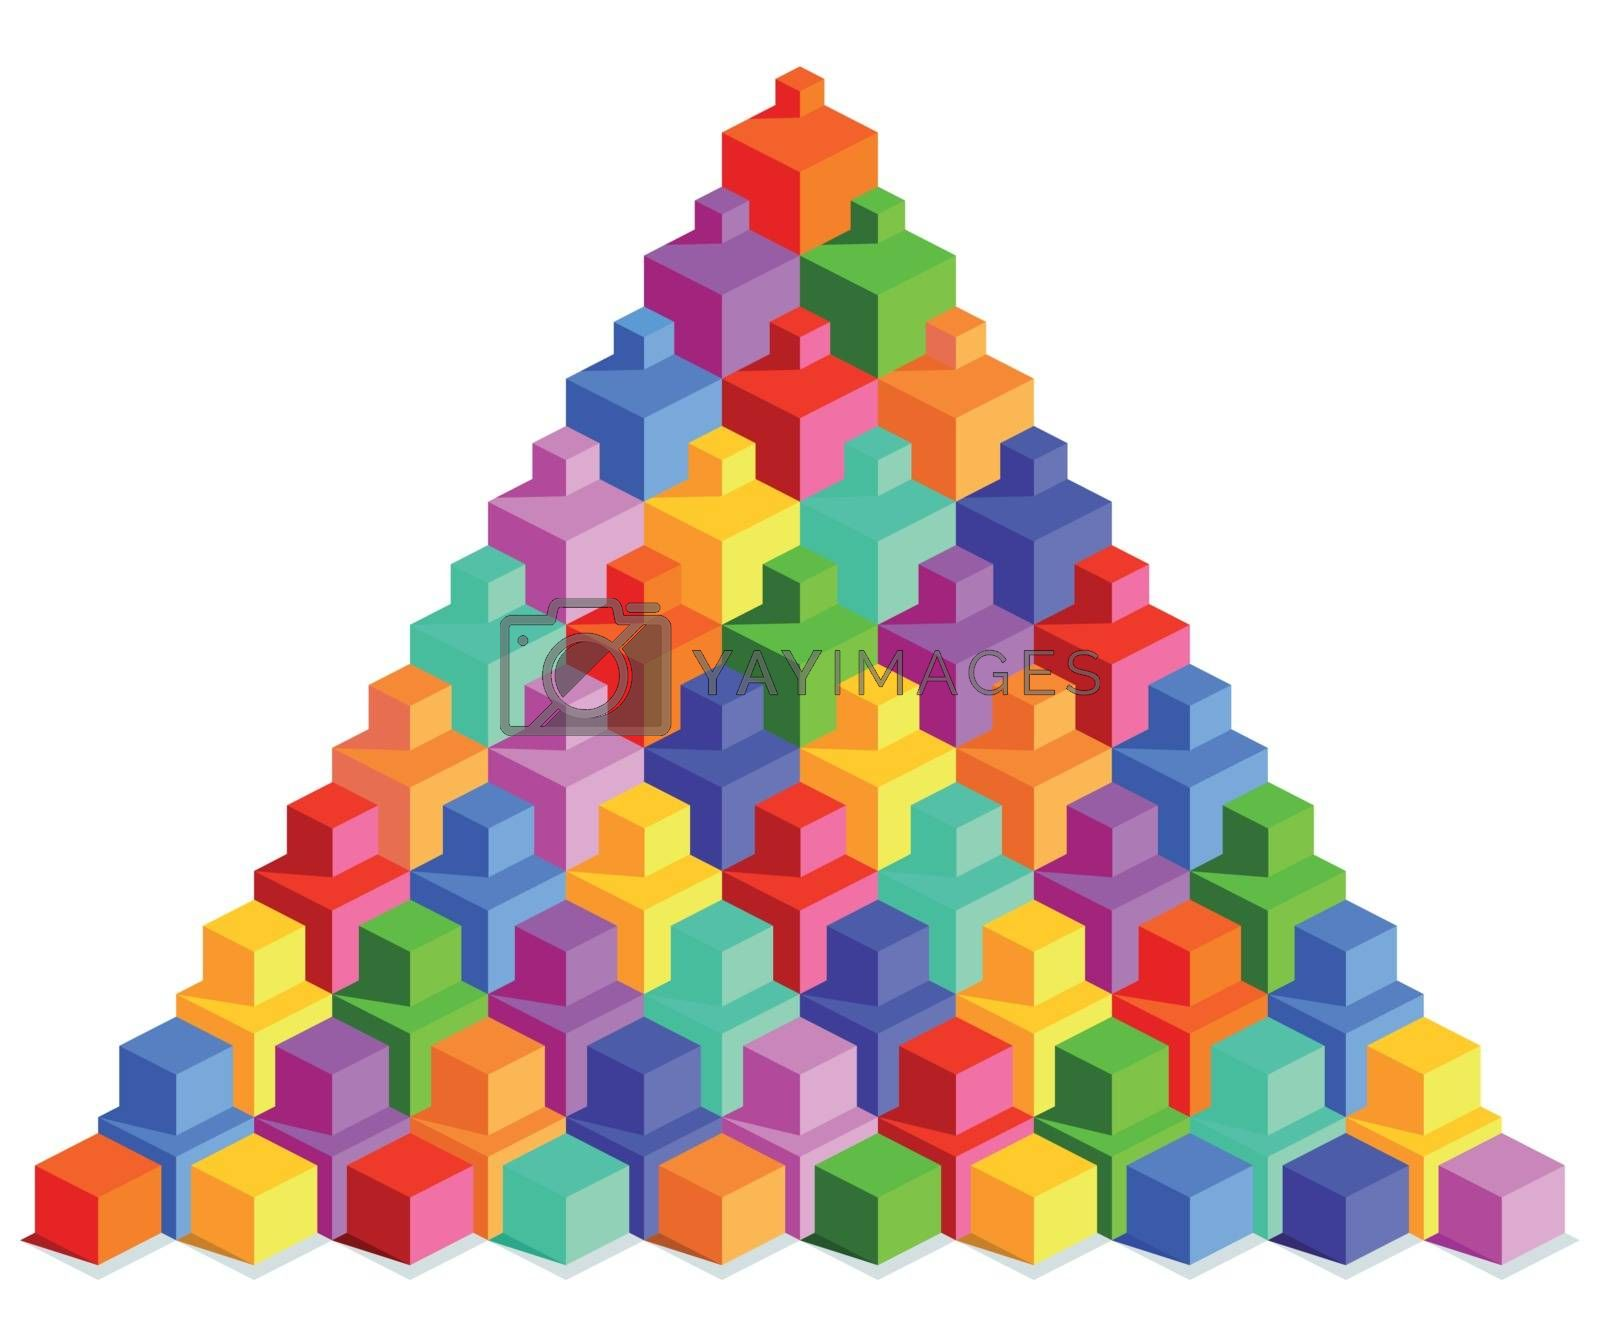 Royalty free image of Pyramid of colorful cubes, illustration by scusi